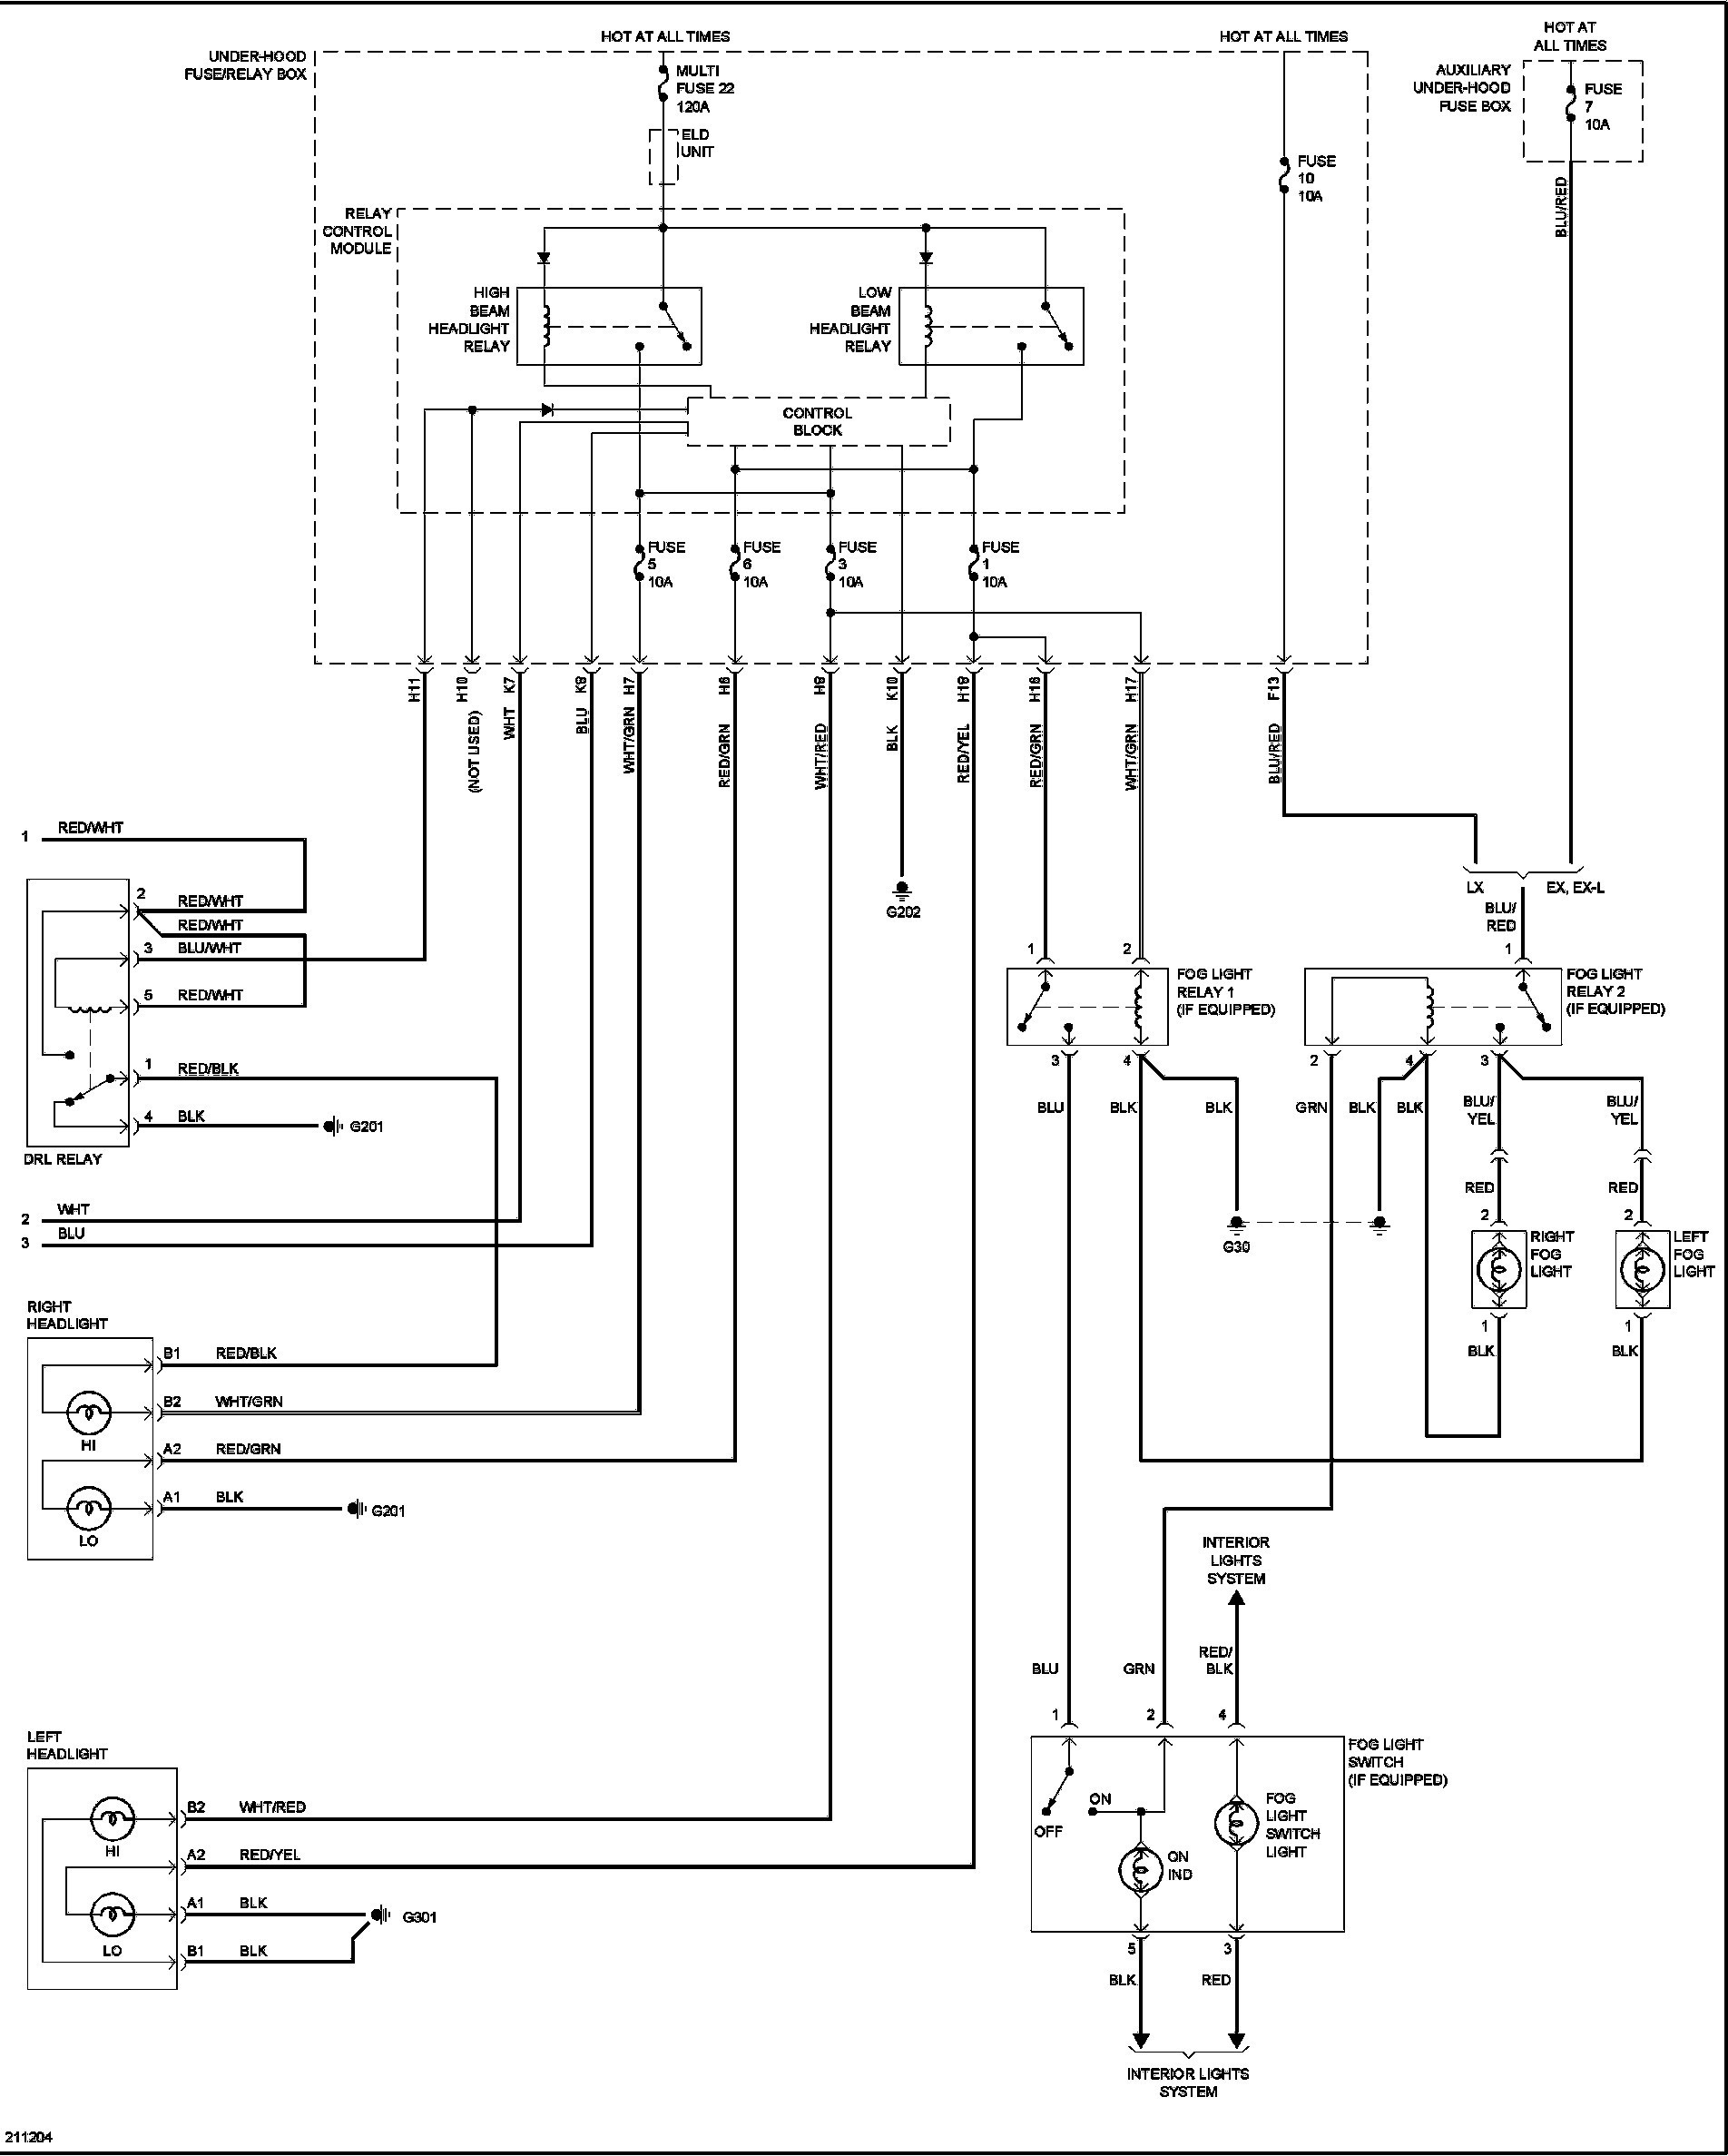 [SCHEMATICS_49CH]  1995 Honda Odyssey Fuse Diagram | Wiring Library | Wiring Diagram Honda Shuttle |  | Wiring Resources